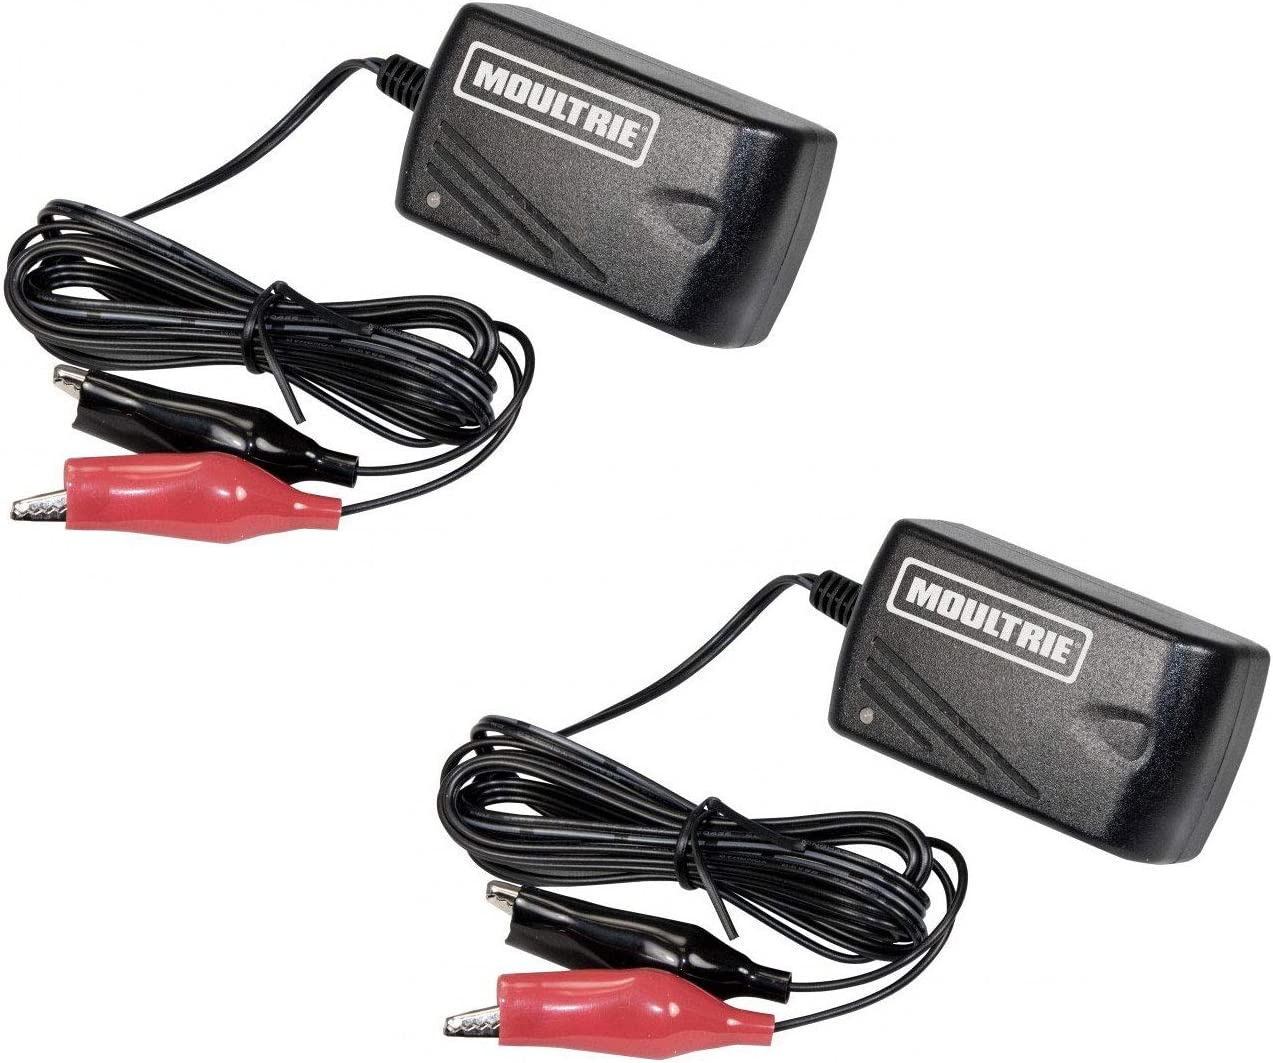 MOULTIE BATTERY CHARGER 6 VOLT BATTERY CHARGER